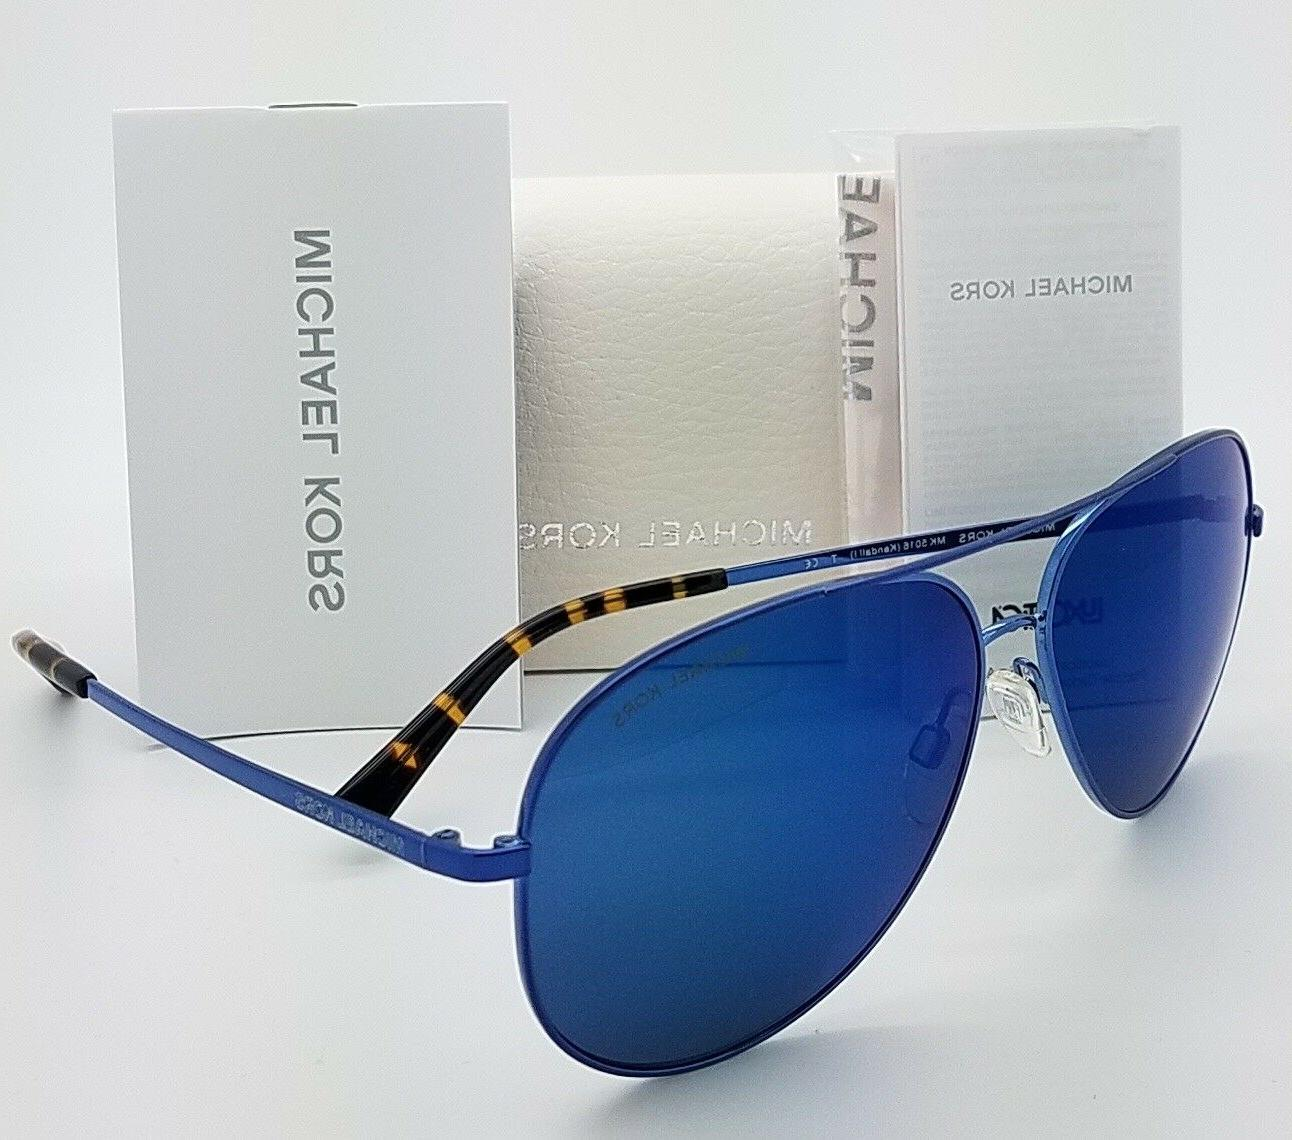 new sunglasses mk5016 117355 60mm black blue